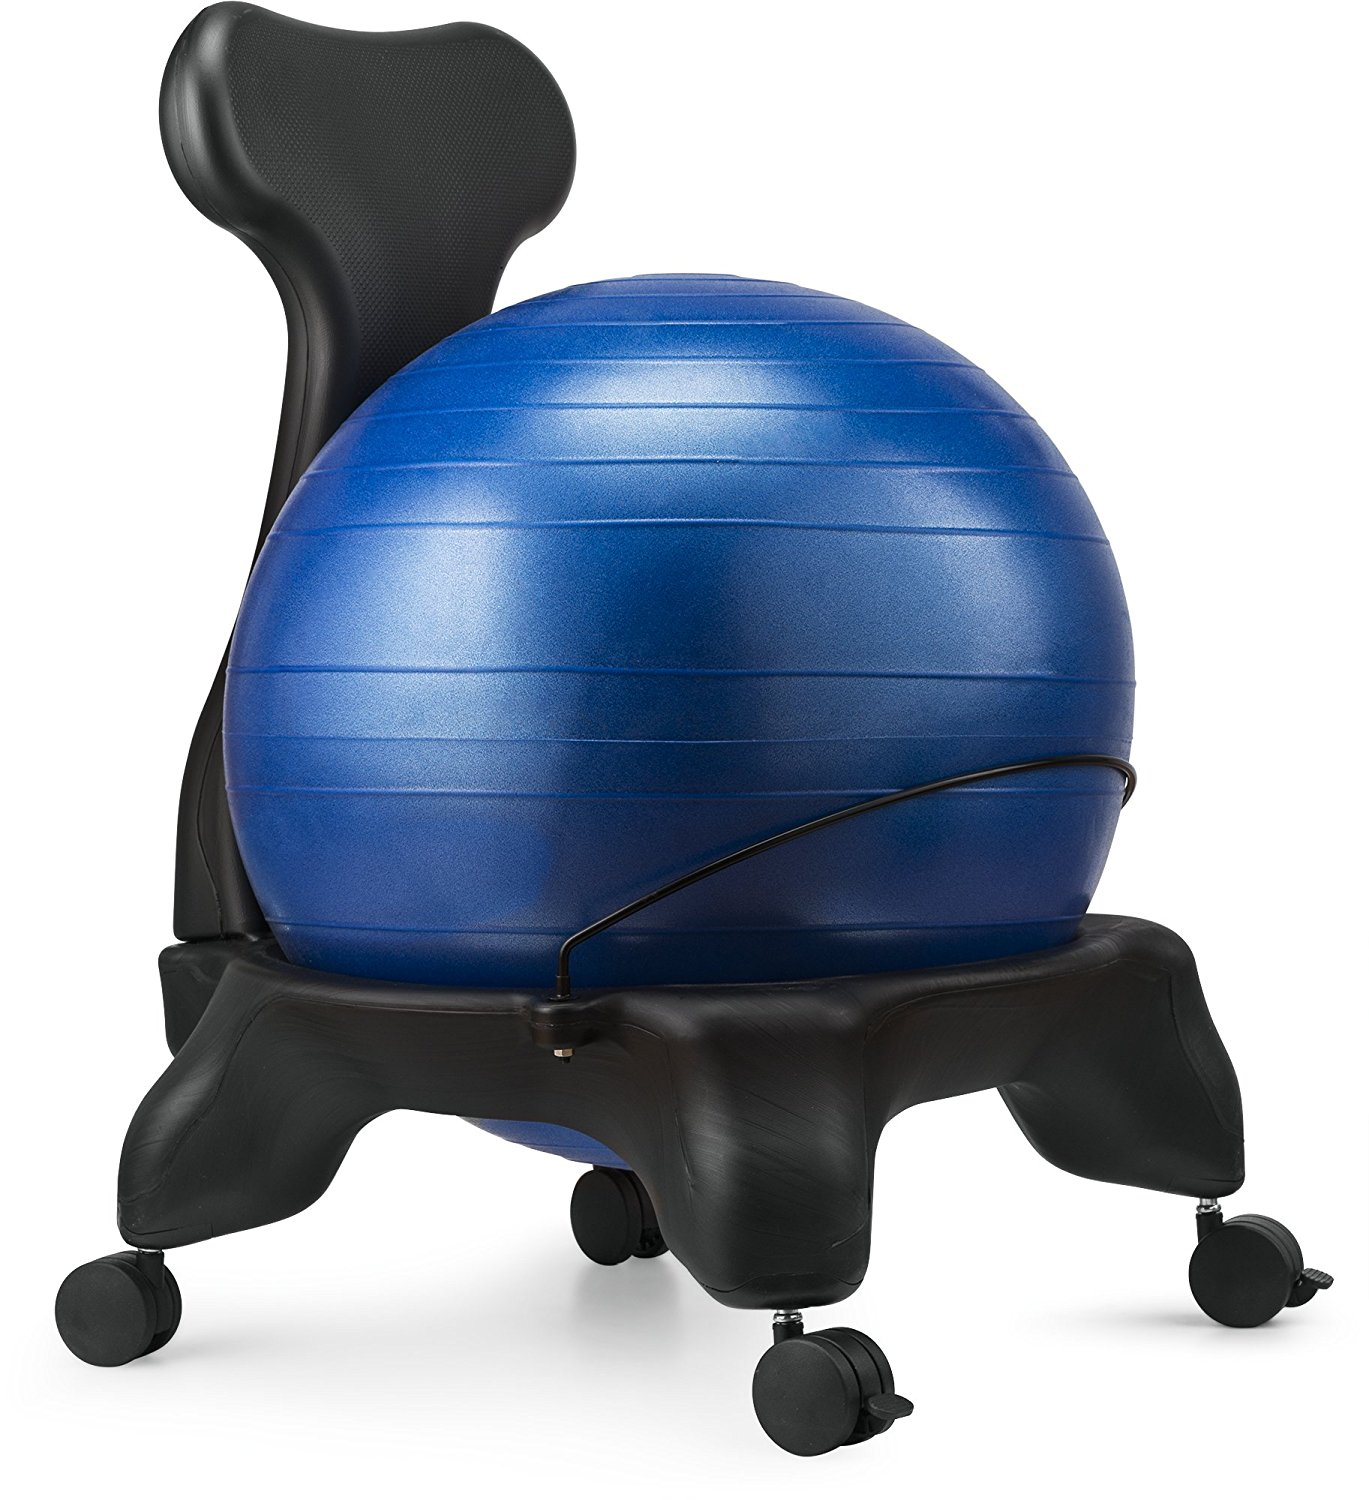 Exercise Ball Desk Chair Cheap Exercise Ball Office Chair Find Exercise Ball Office Chair